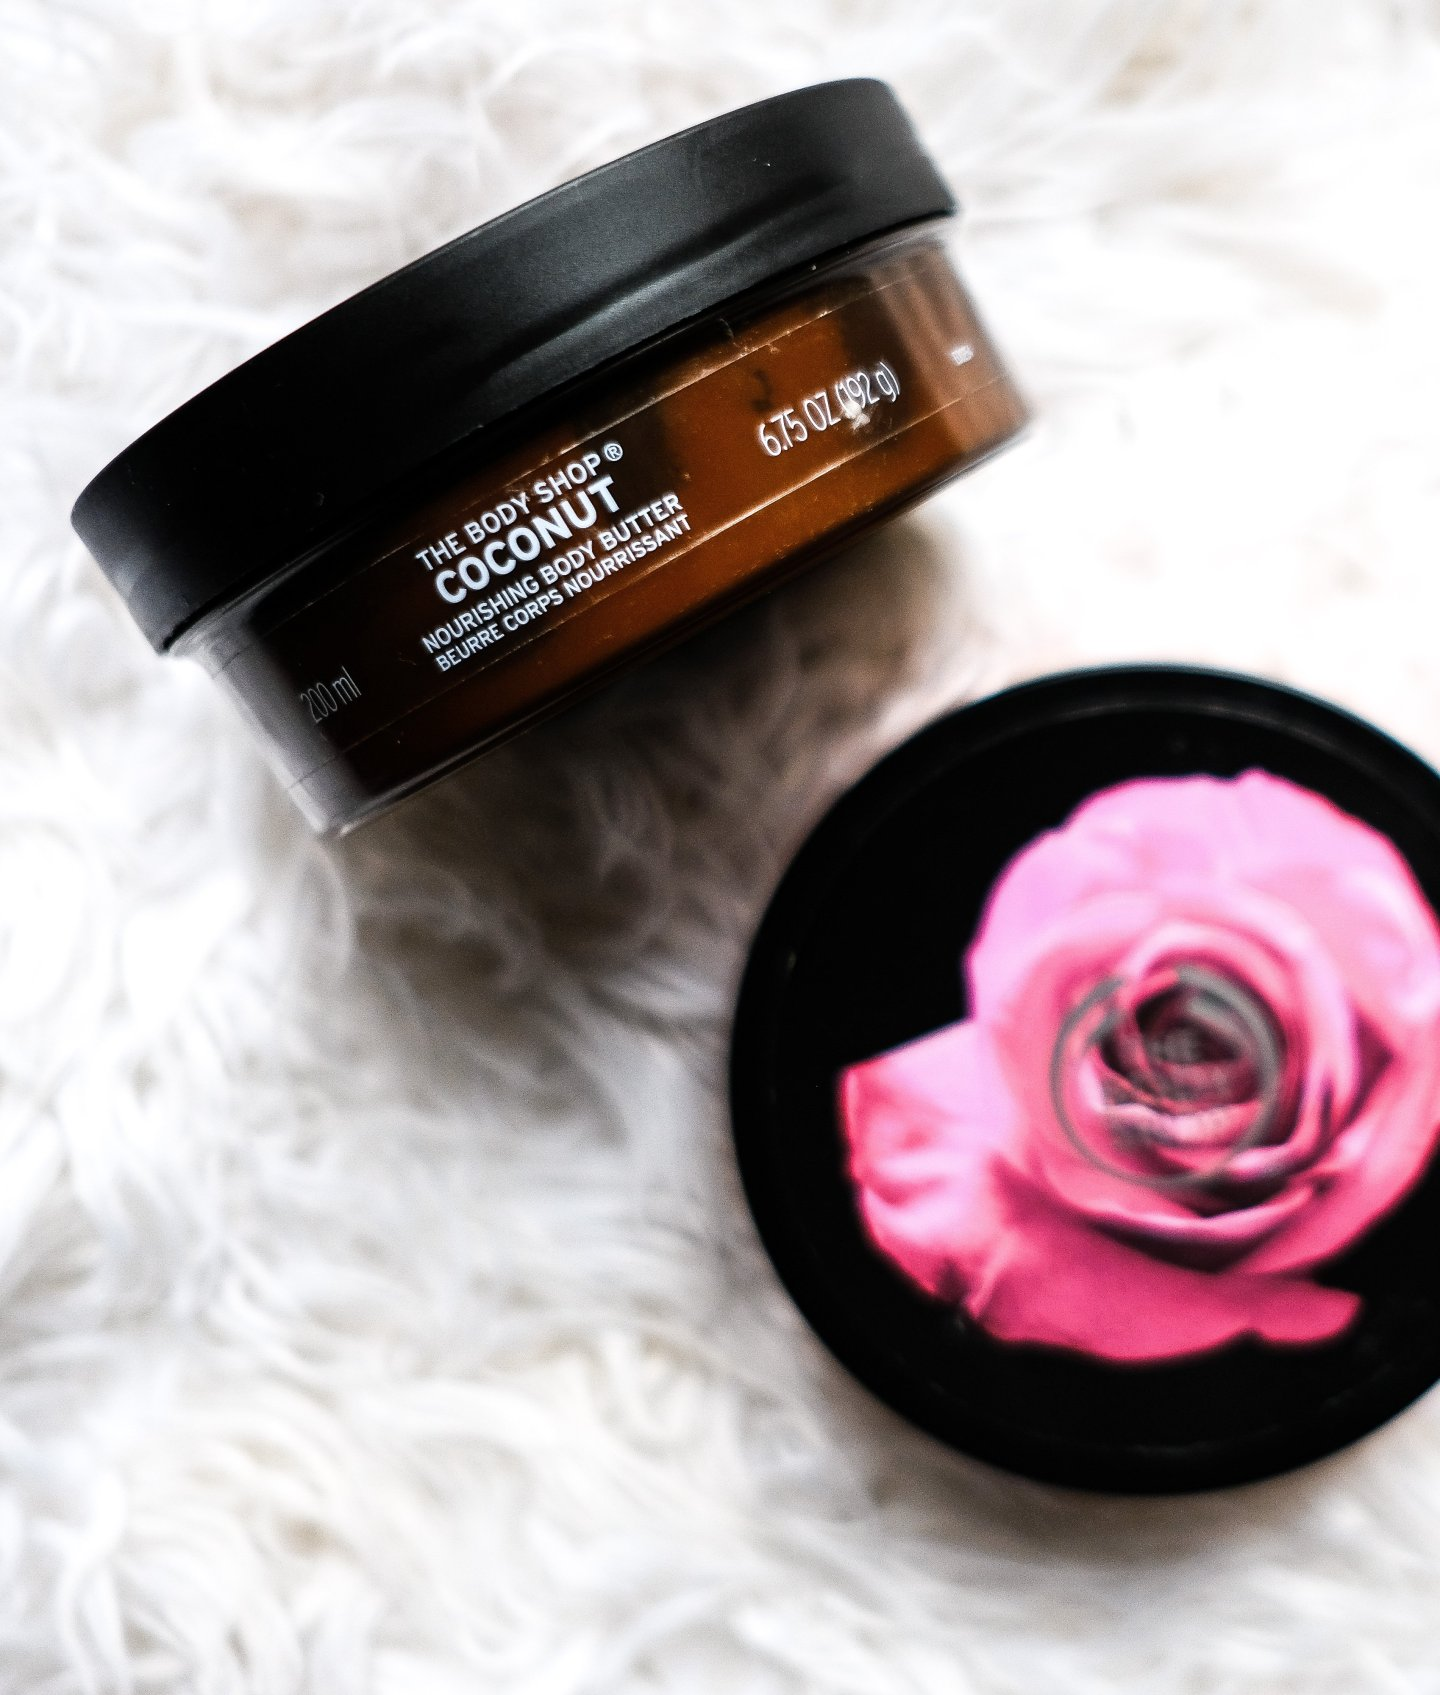 Lifestyle Blogger Chocolate & Lace shares her must have beauty products